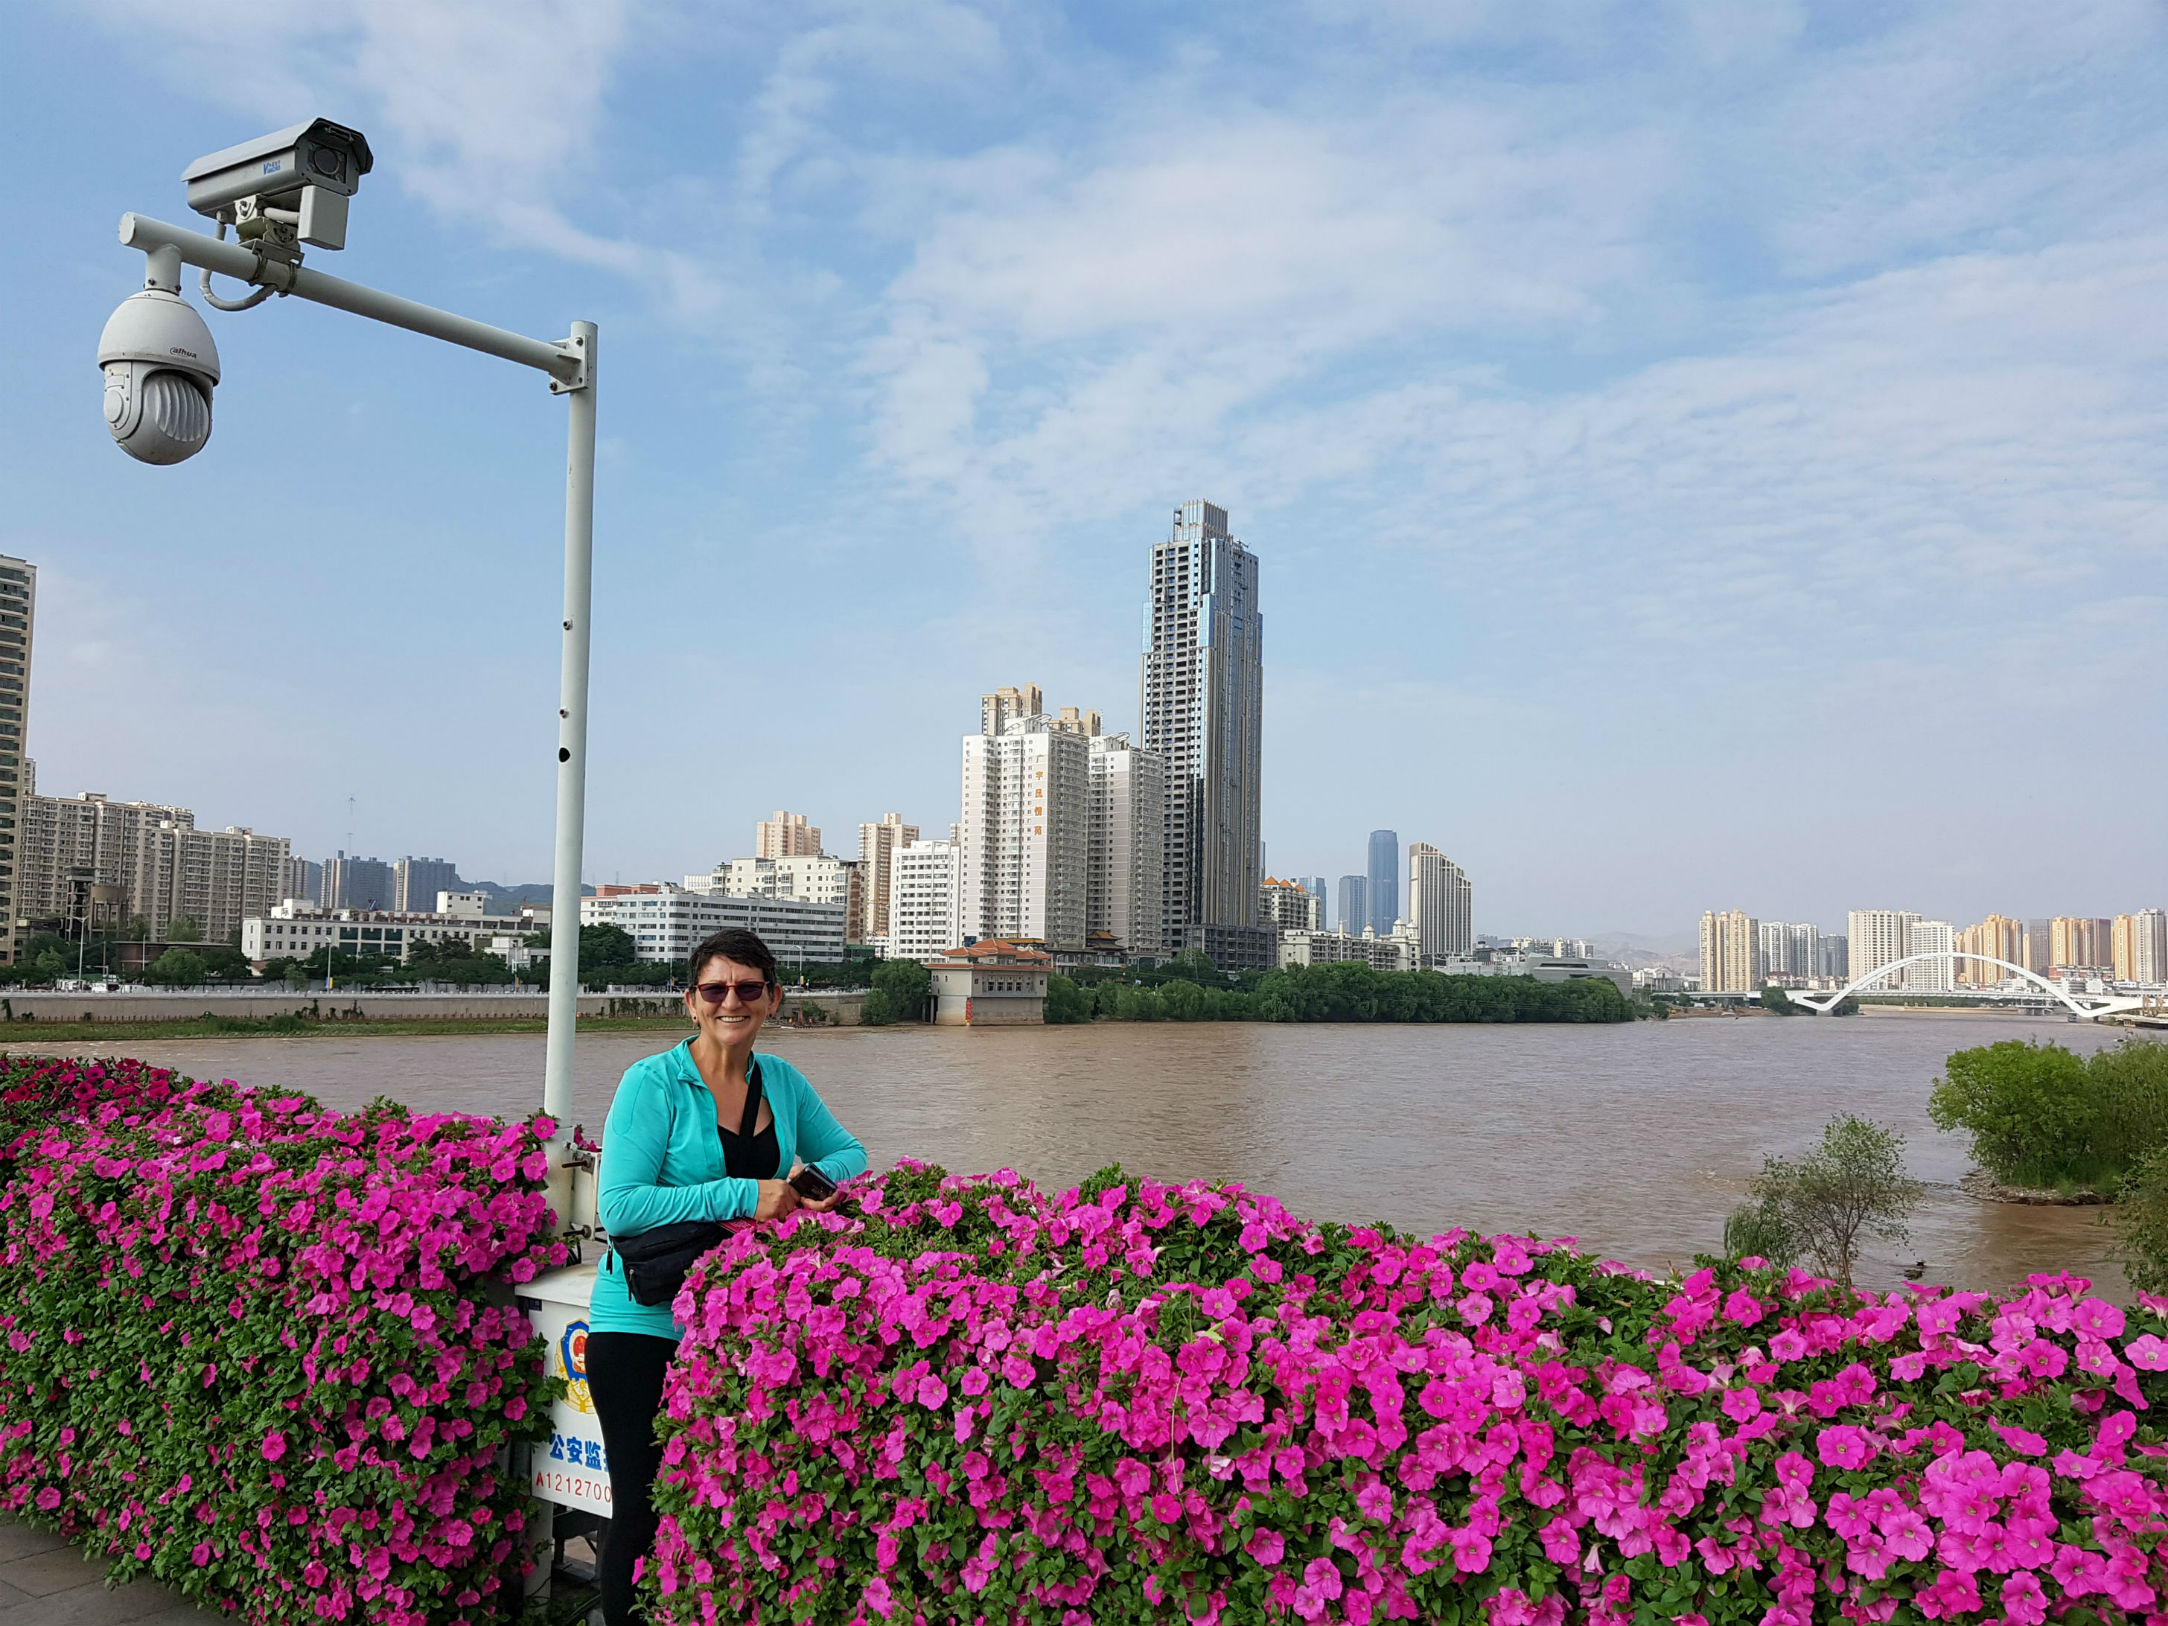 Yellow River in Lanzhou - note the CCTV camera's